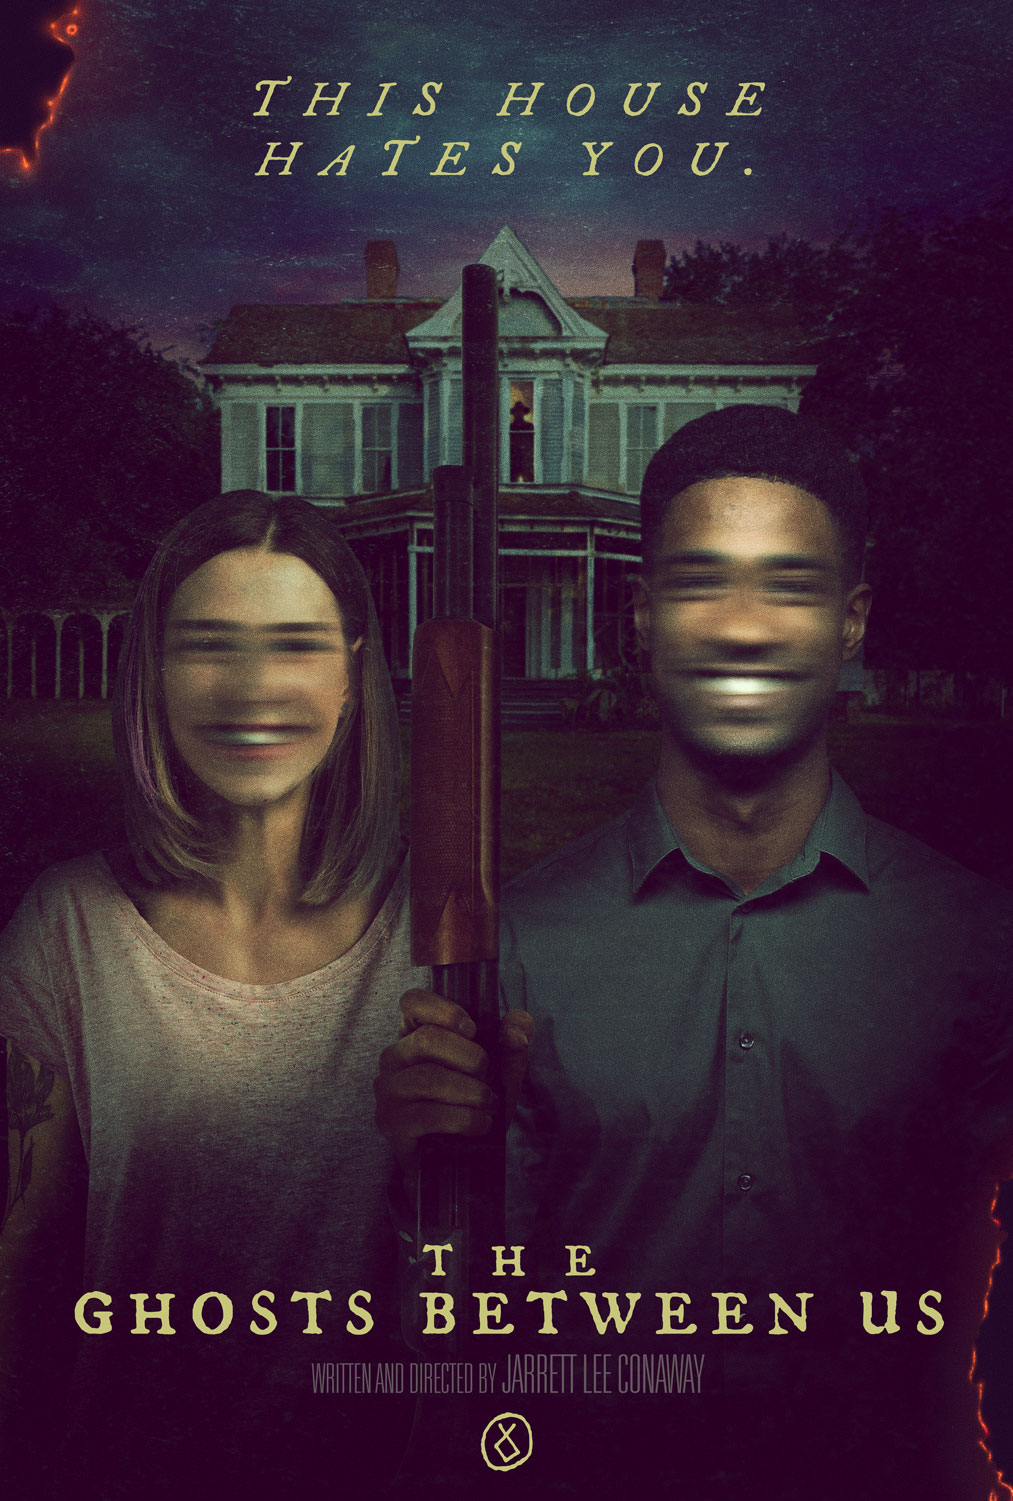 The Ghosts Between Us Movie Poster